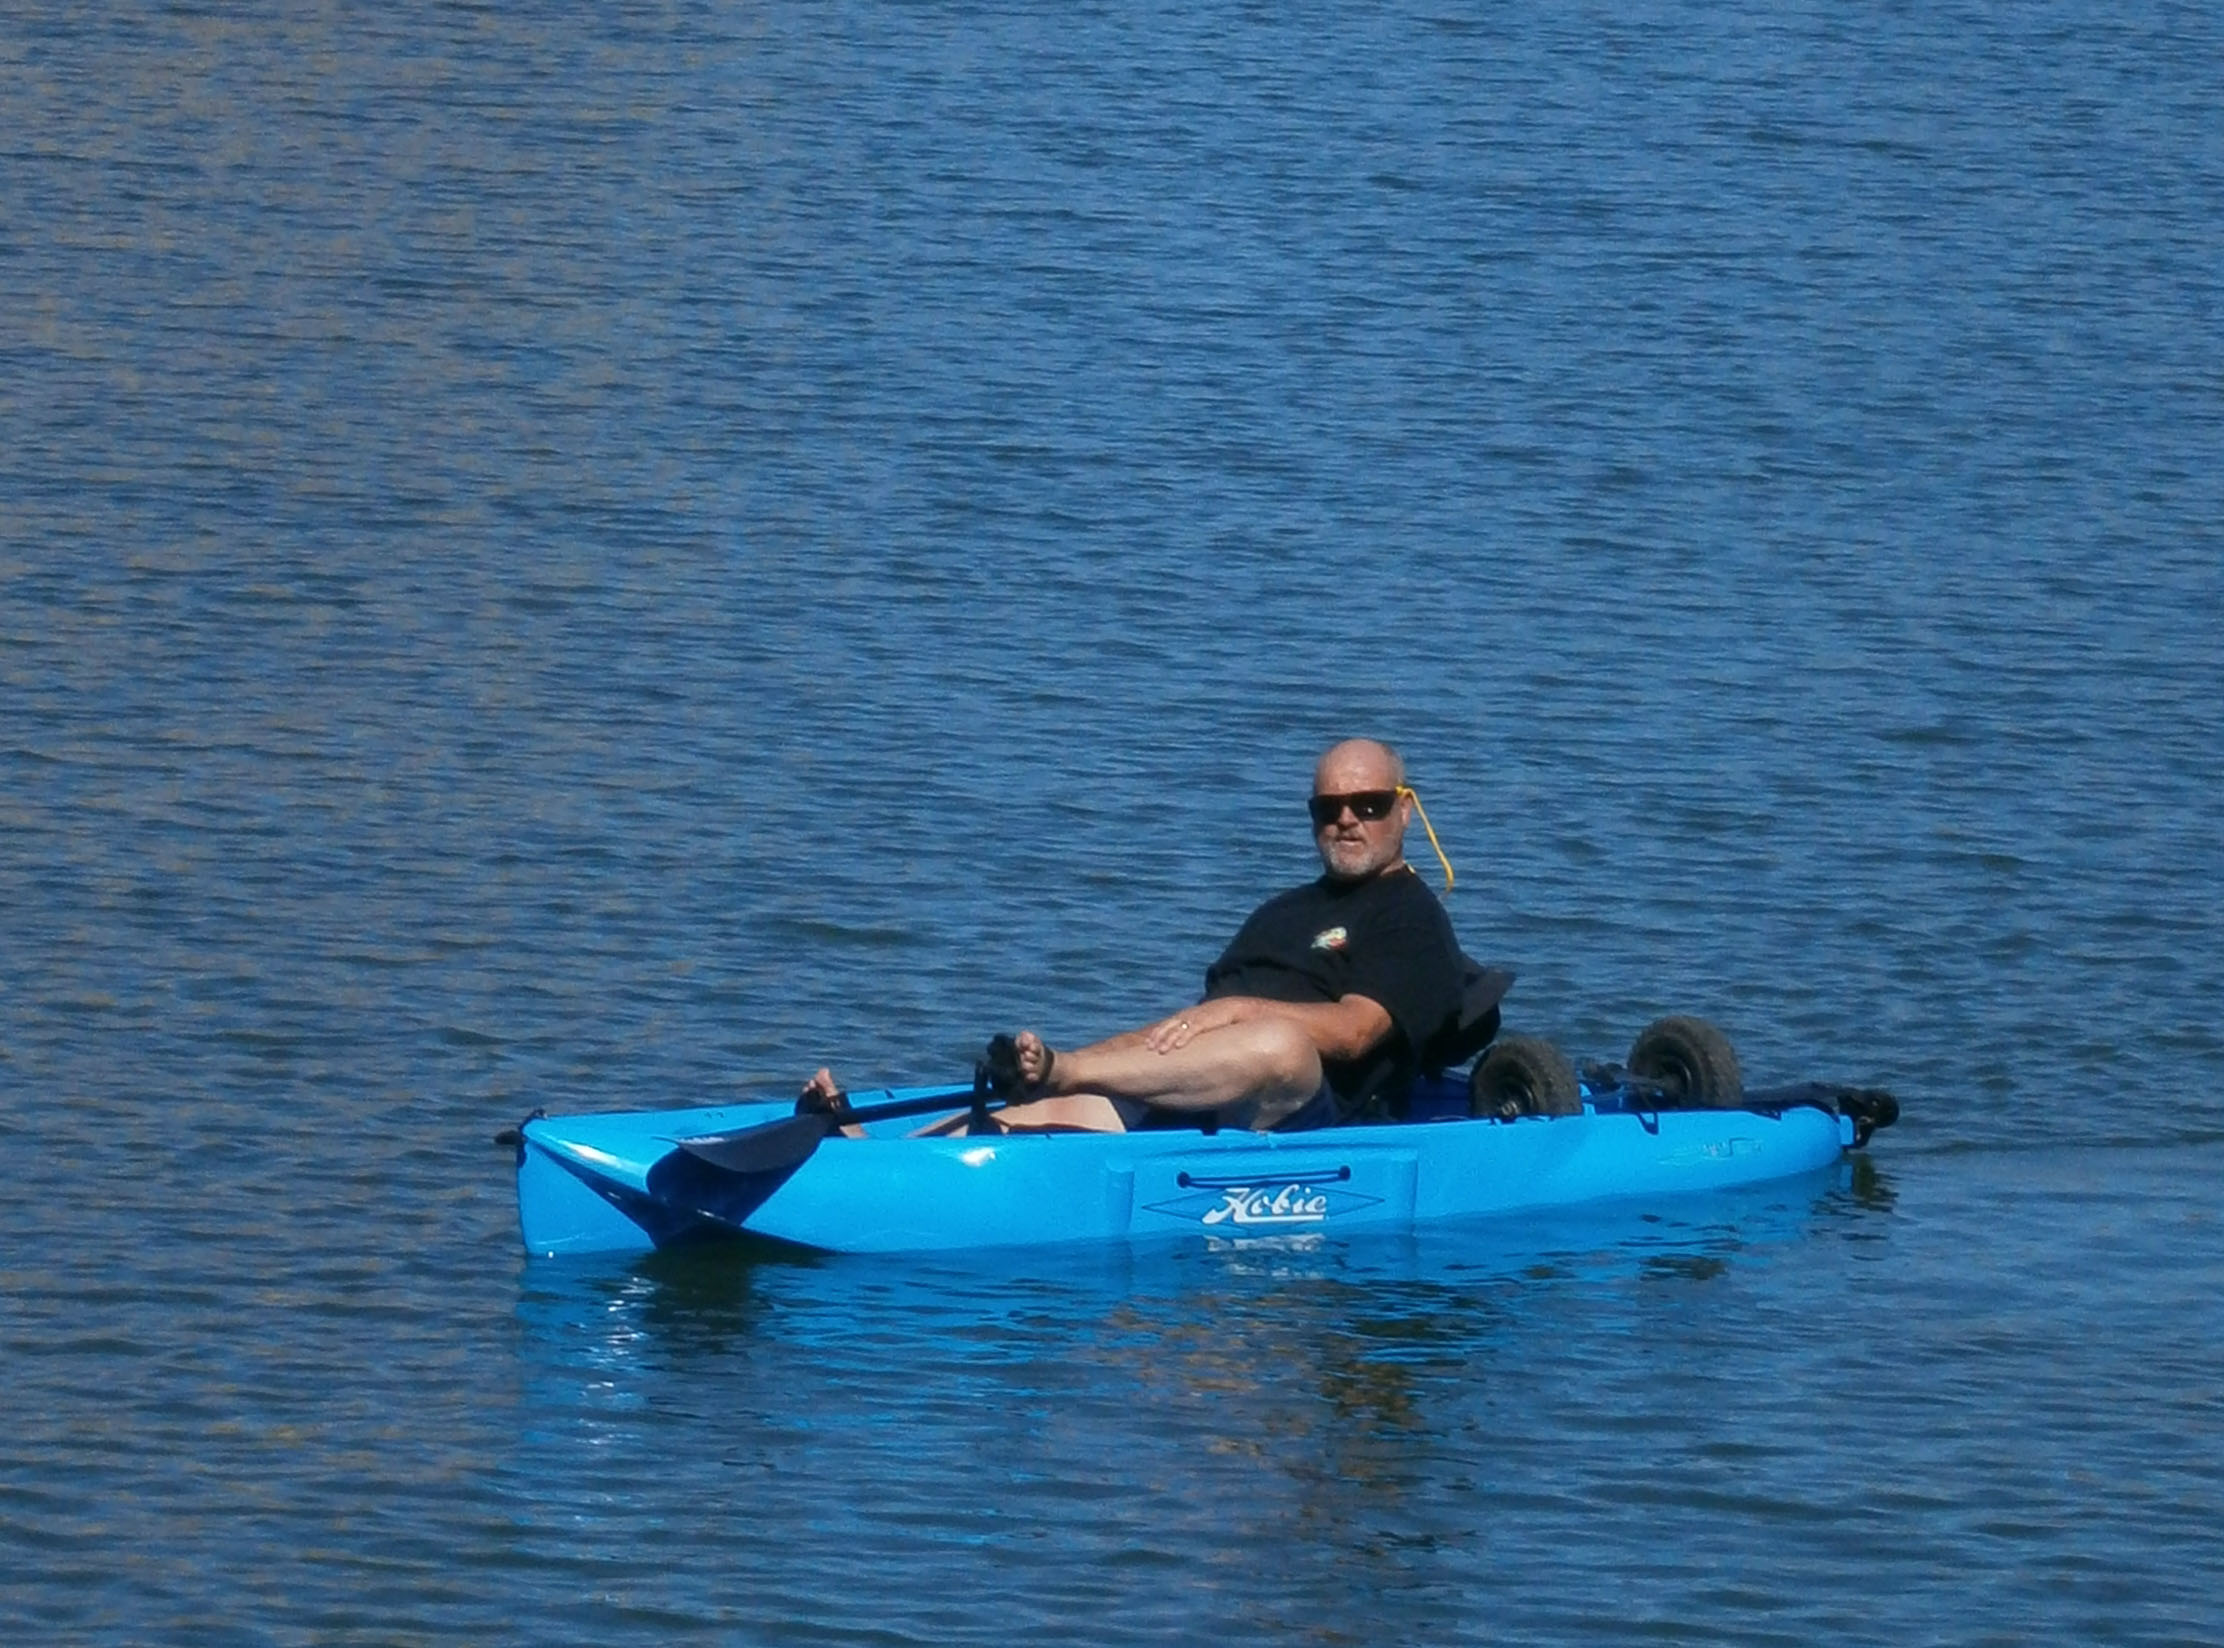 Don, in the lagoon